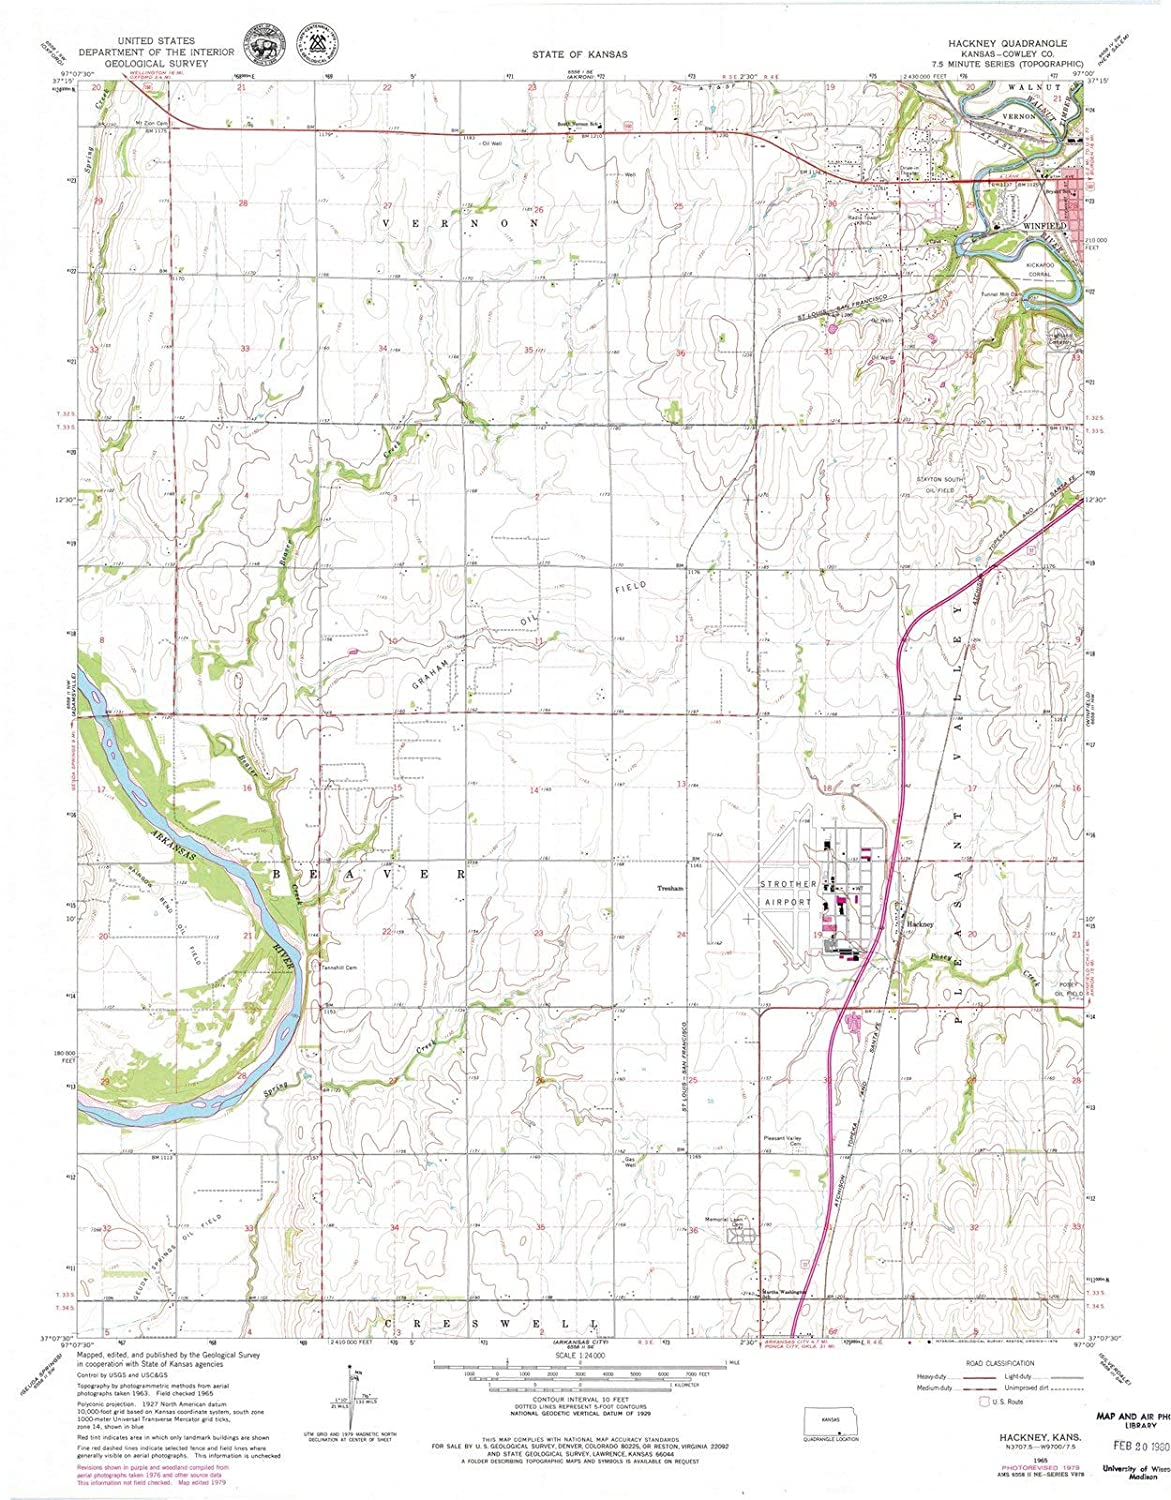 Amazon.com: Kansas Maps | 1965 ney, KS USGS Historical ... on interstate 30 map, interstate map of mississippi and alabama, interstate 85 map, lincoln way map, new jersey route 1 map, interstate highway map, interstate 526 map, interstate 75 map, interstate 70 map, interstate 27 map, us highway 78 map, interstate 80 map, interstate 25 map, interstate 10 map, interstate 422 map, interstate 26 map, interstate 44 map, interstate 74 map,